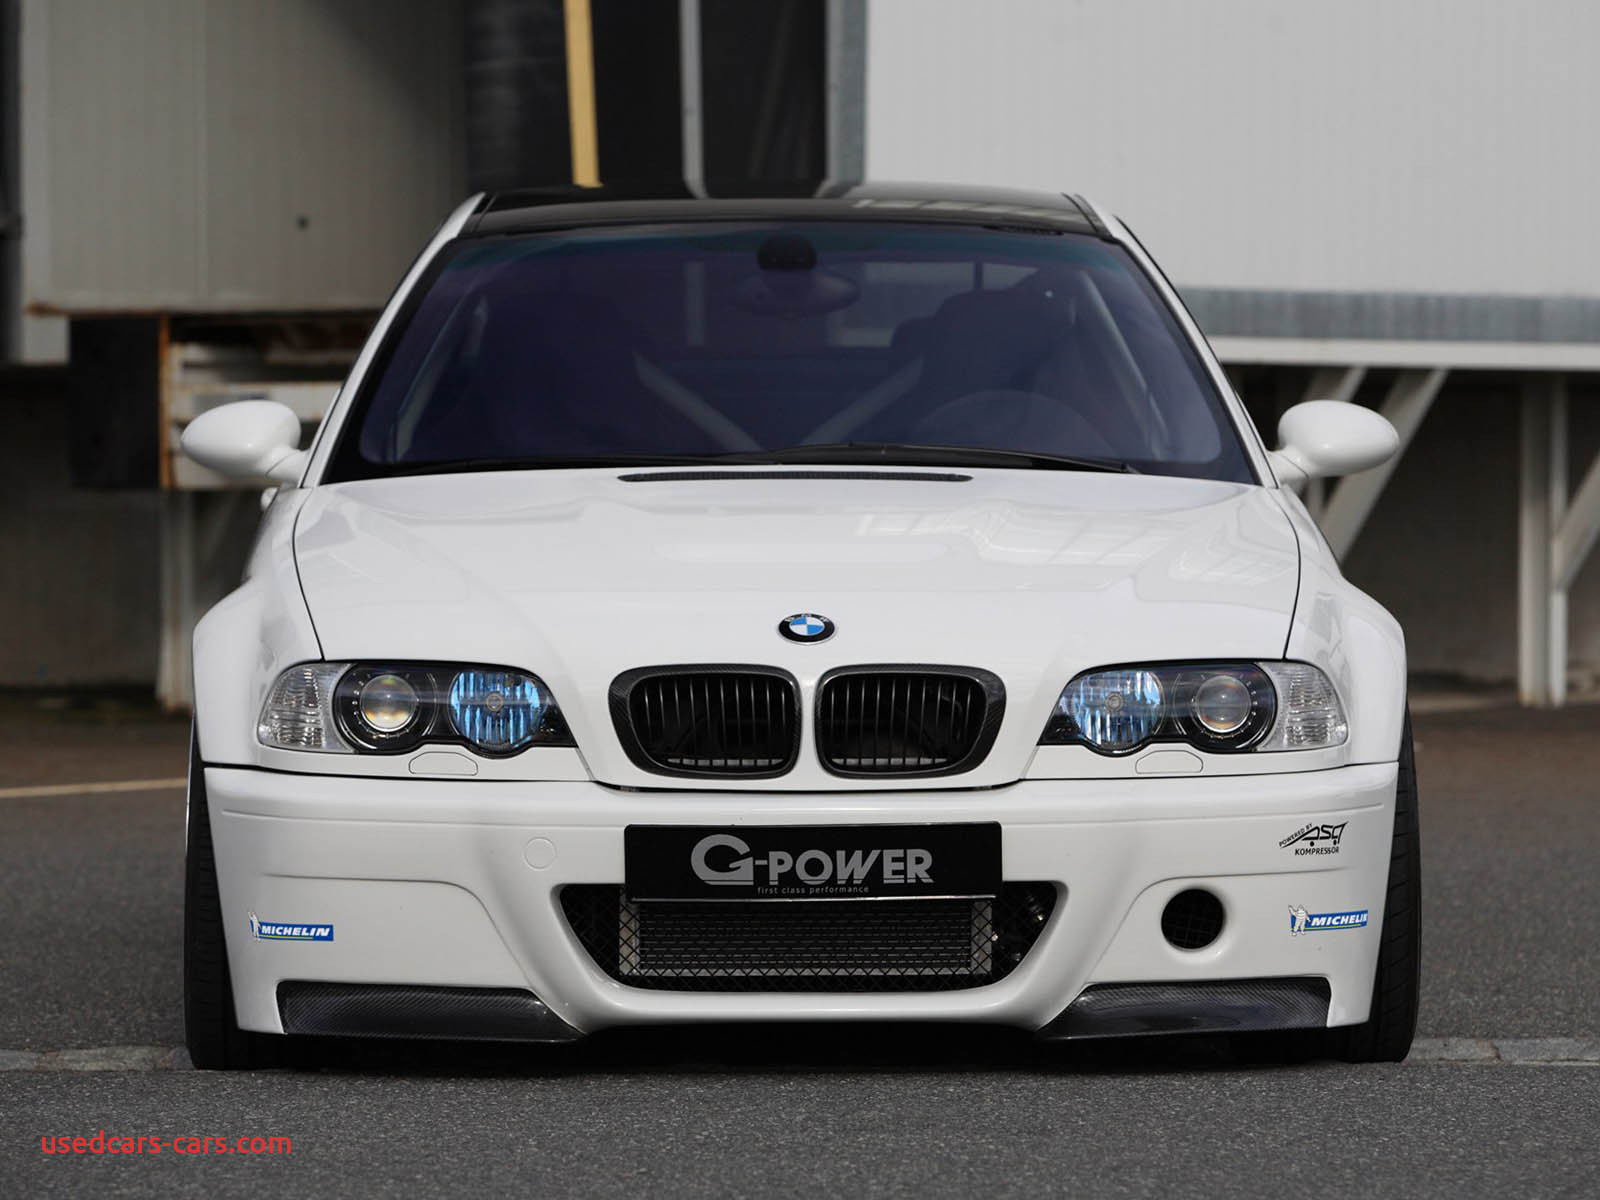 Bmw M3 Csl E46 Awesome Wallpapers Bmw M3 E46 Csl Car Wallpapers